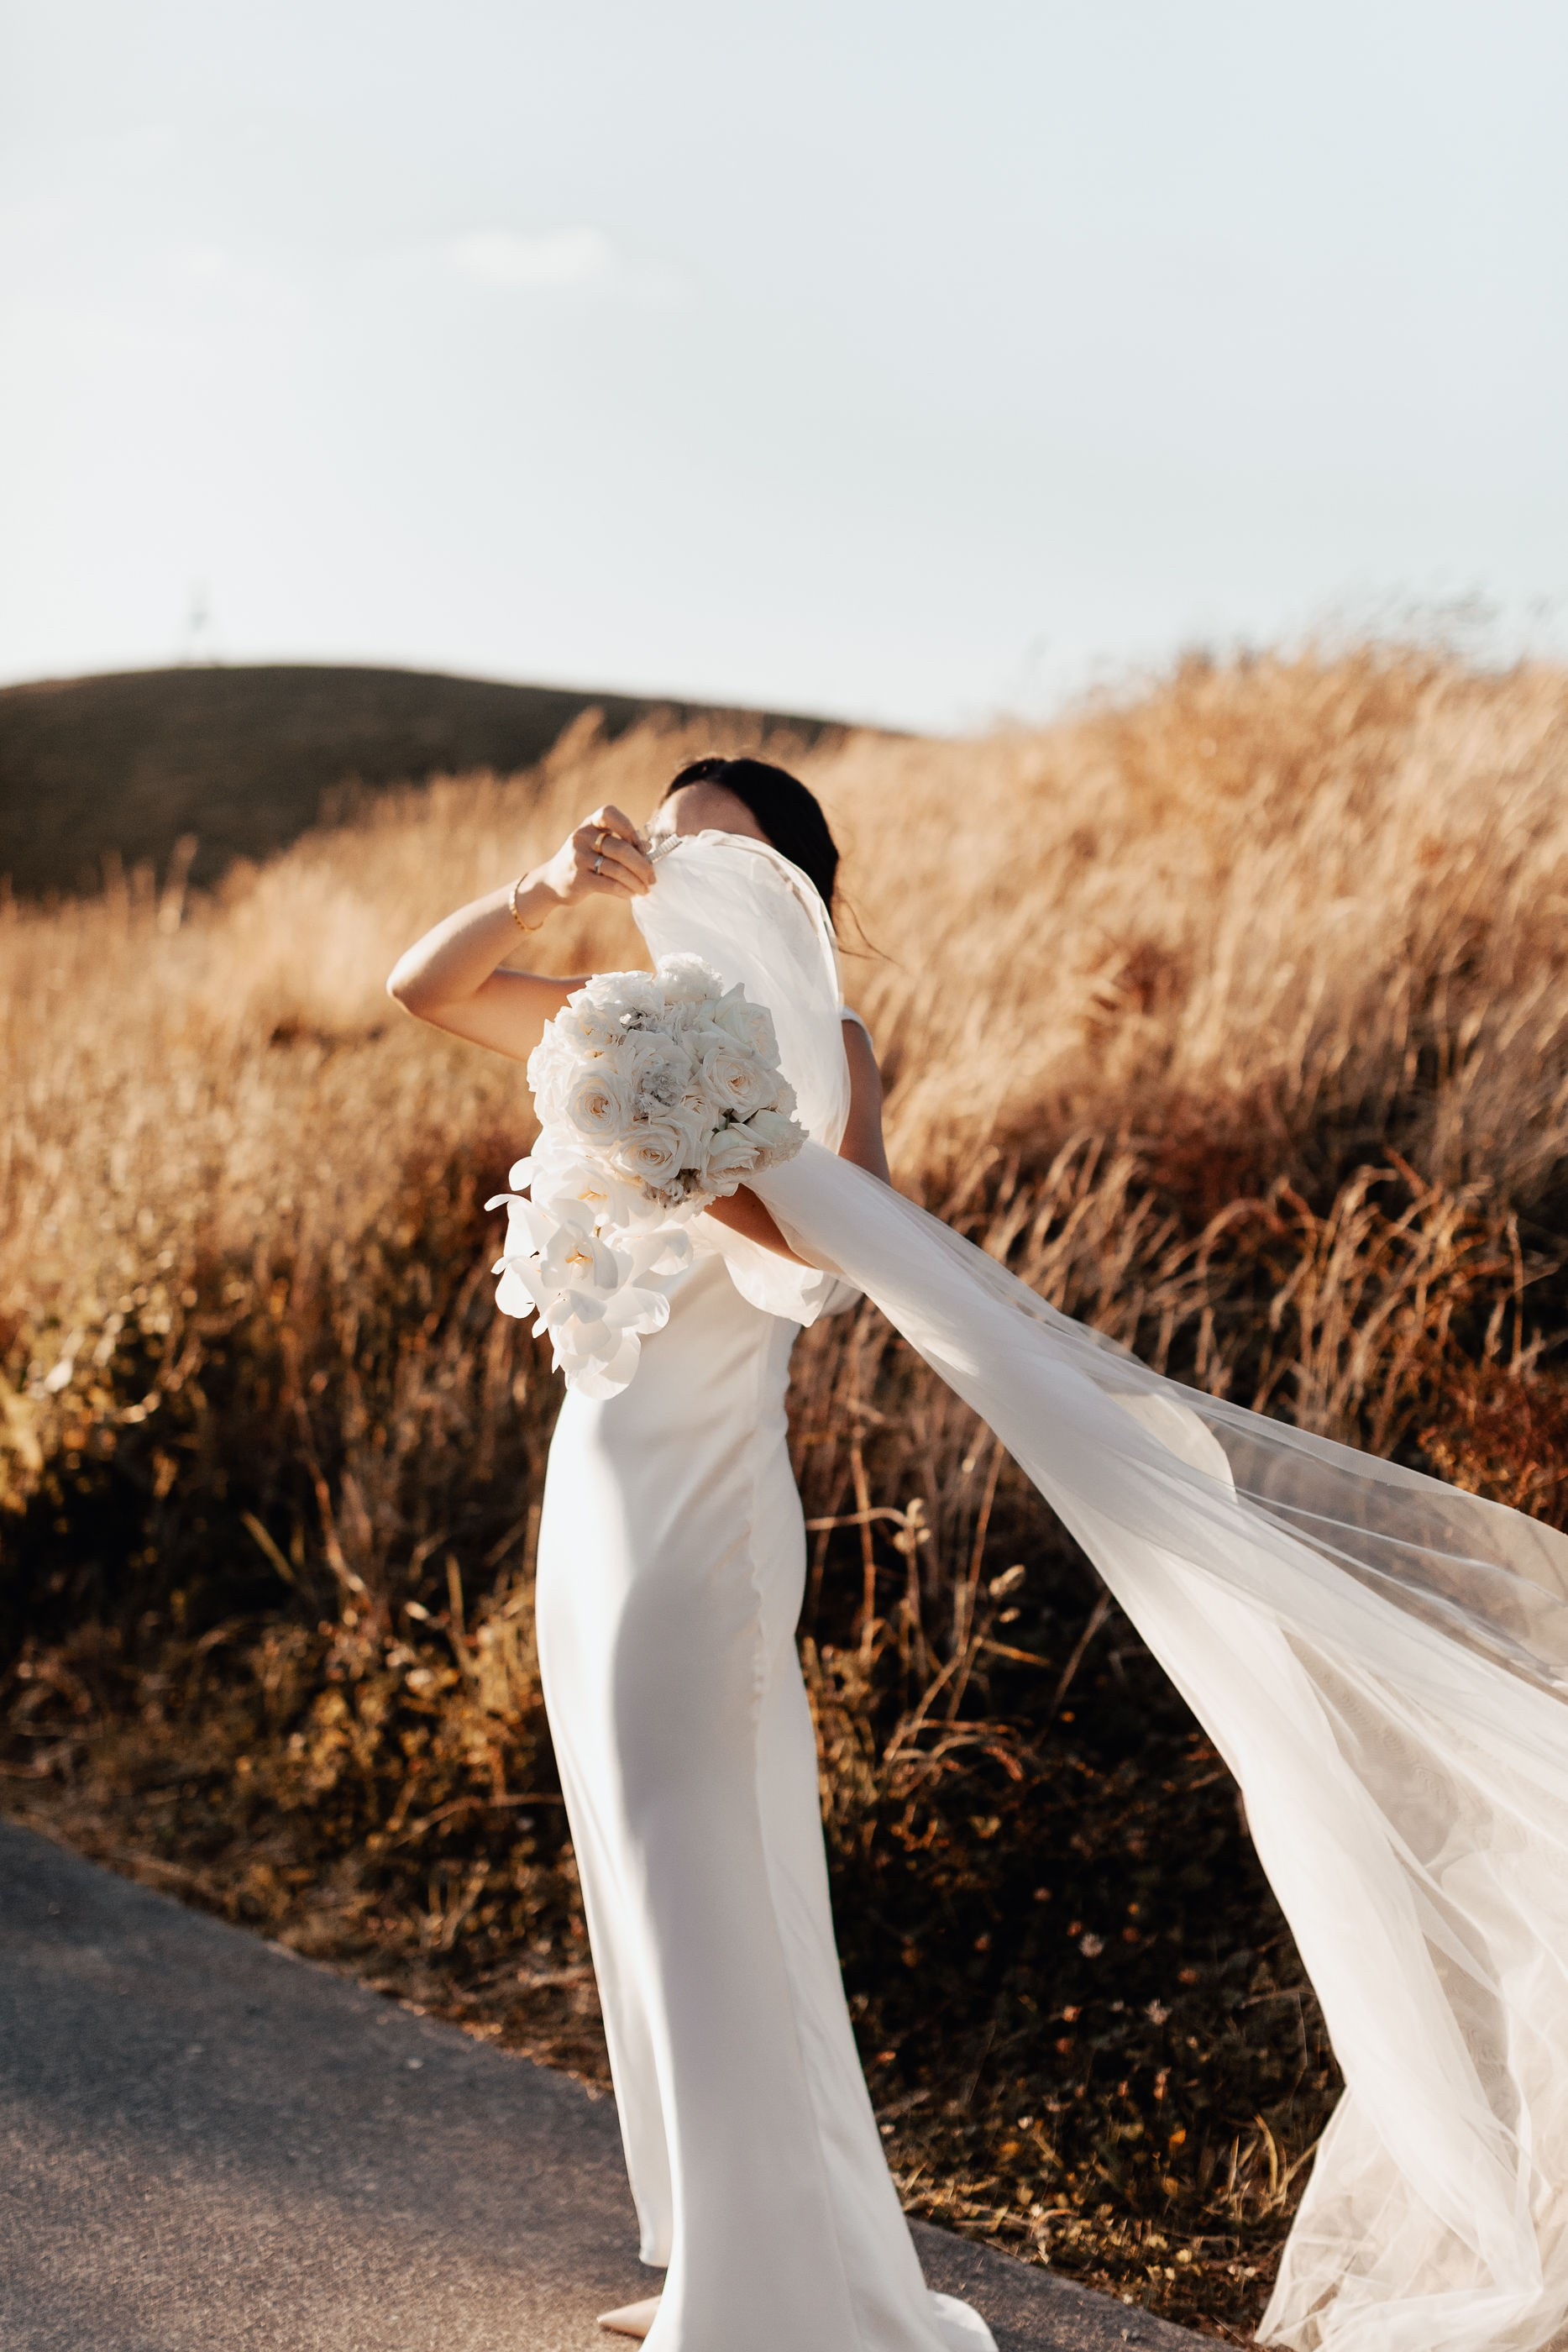 completely ethereal. we adore this shot of flora. - a sunlit dream.